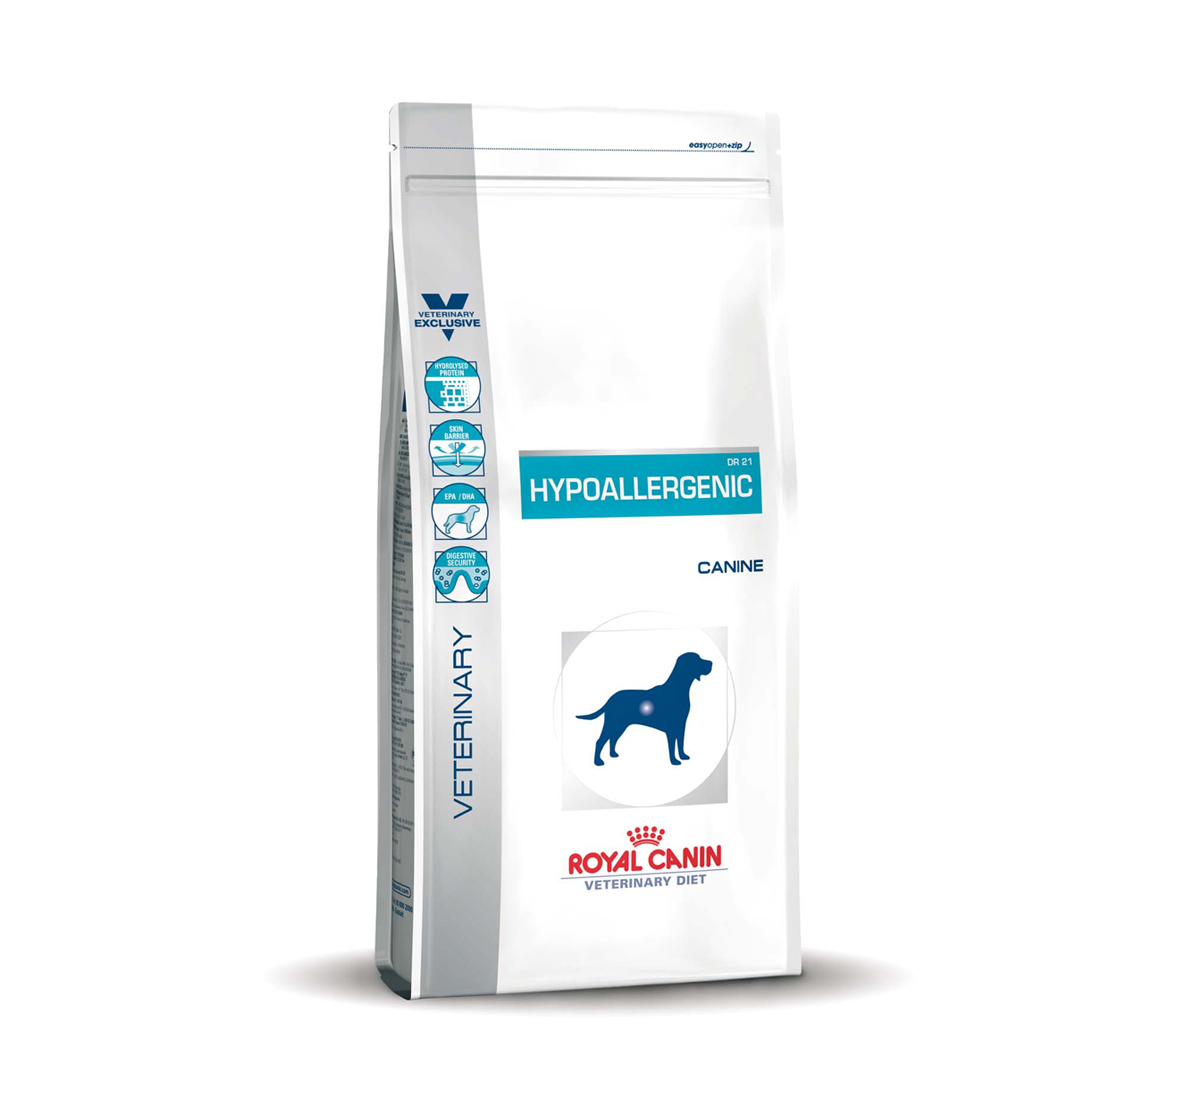 Royal Canin Veterinary Diet Hypoallergenic - 2 Kg